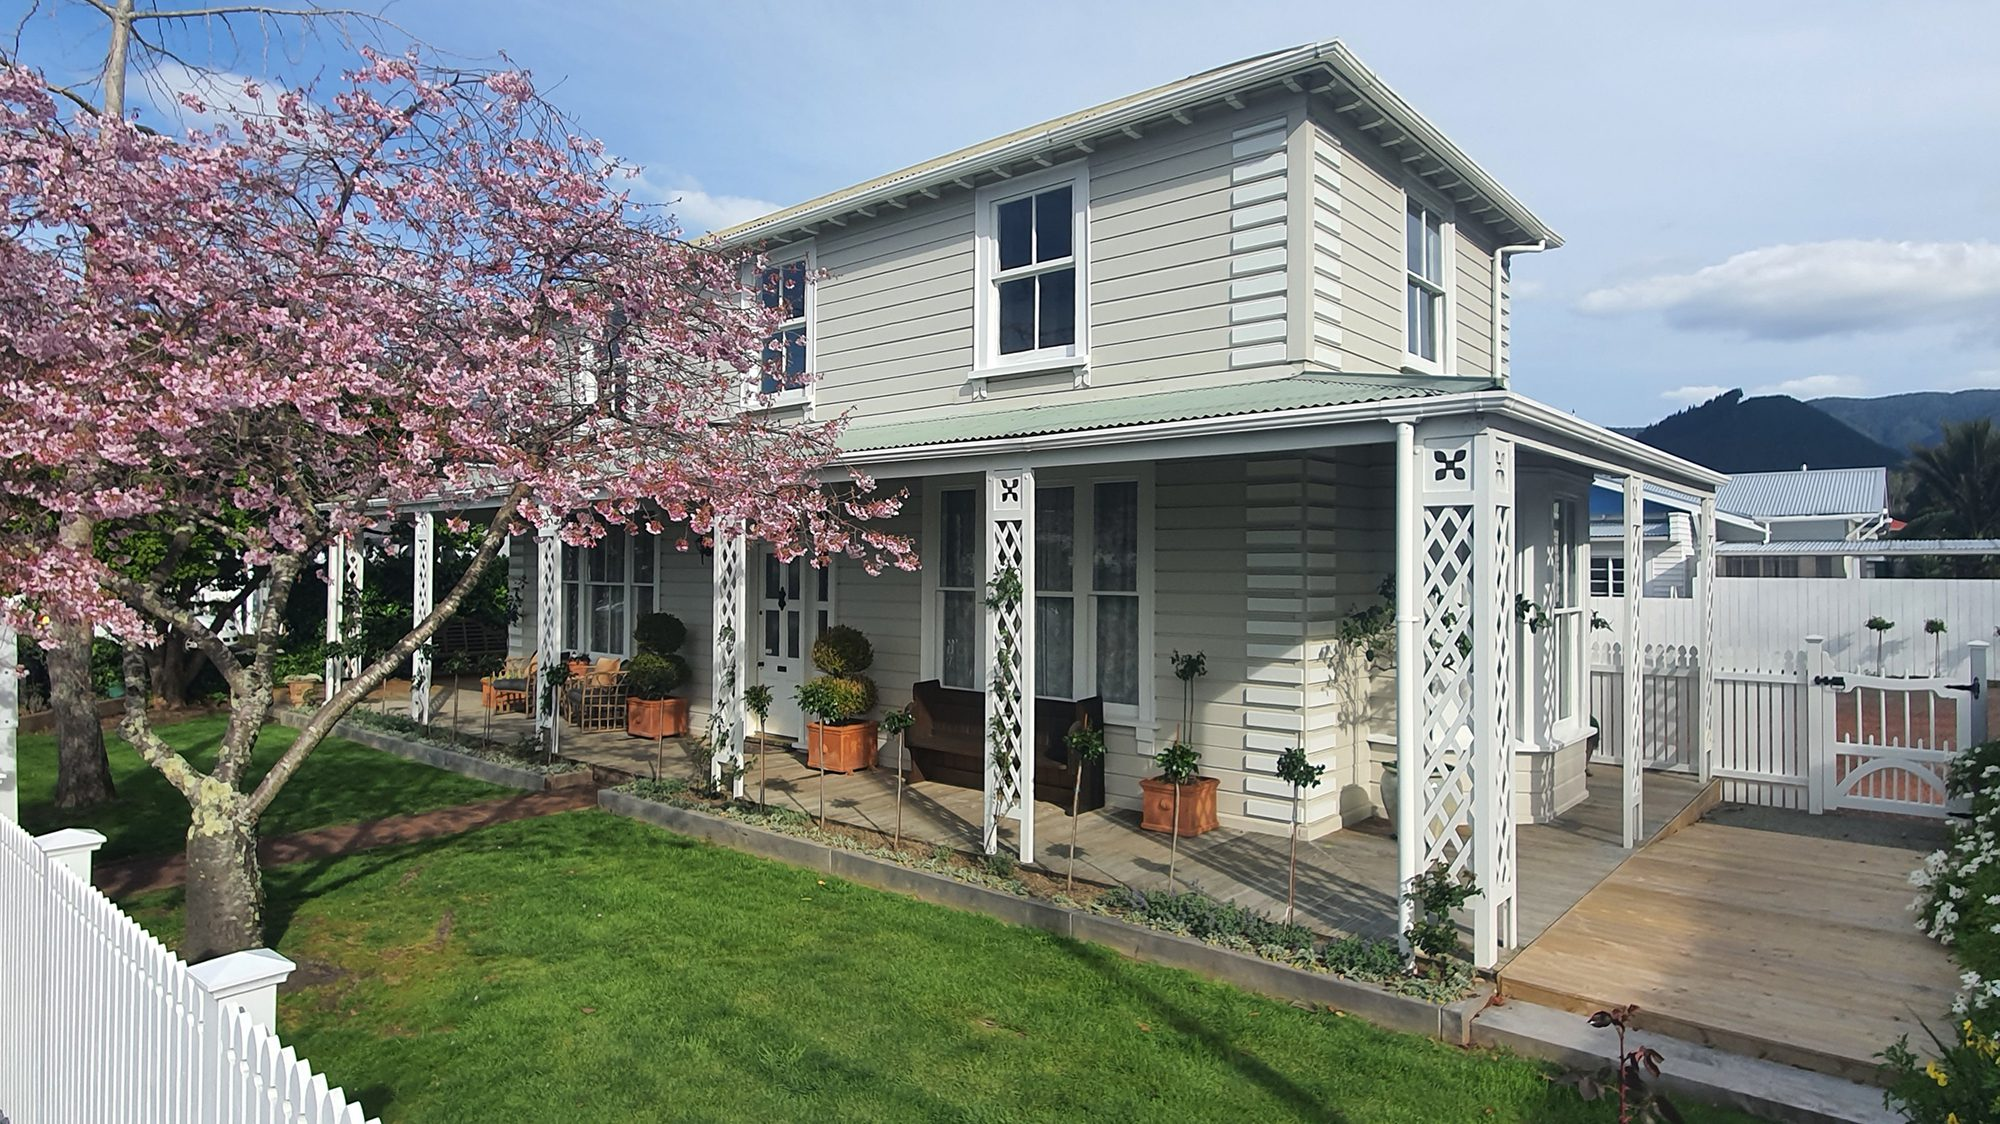 Top Real Estate Agent Nelson NZ